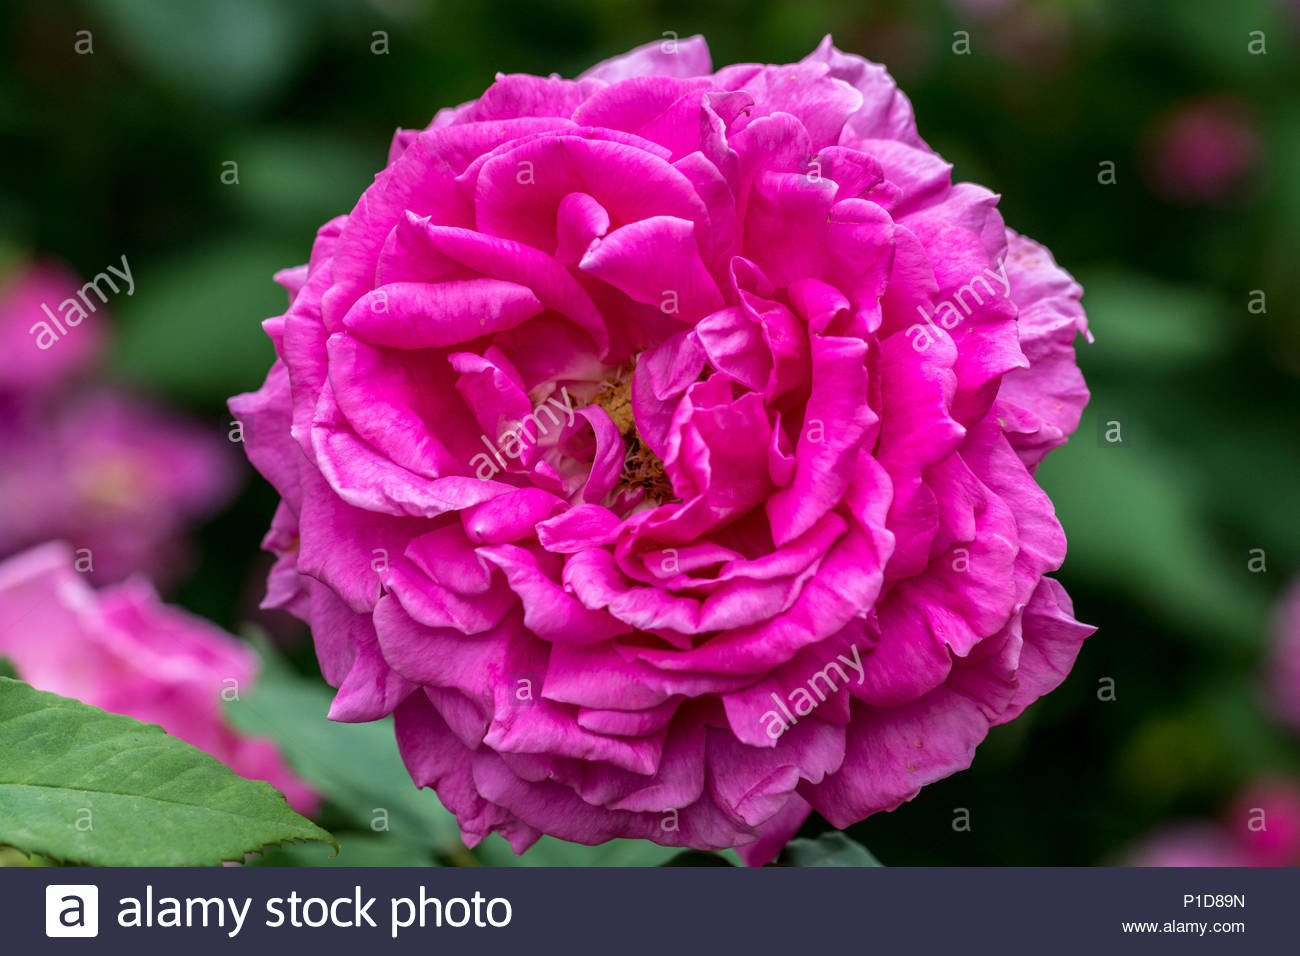 A very fragrant dark pink double rose Mme Isaac Pereire - Stock Image